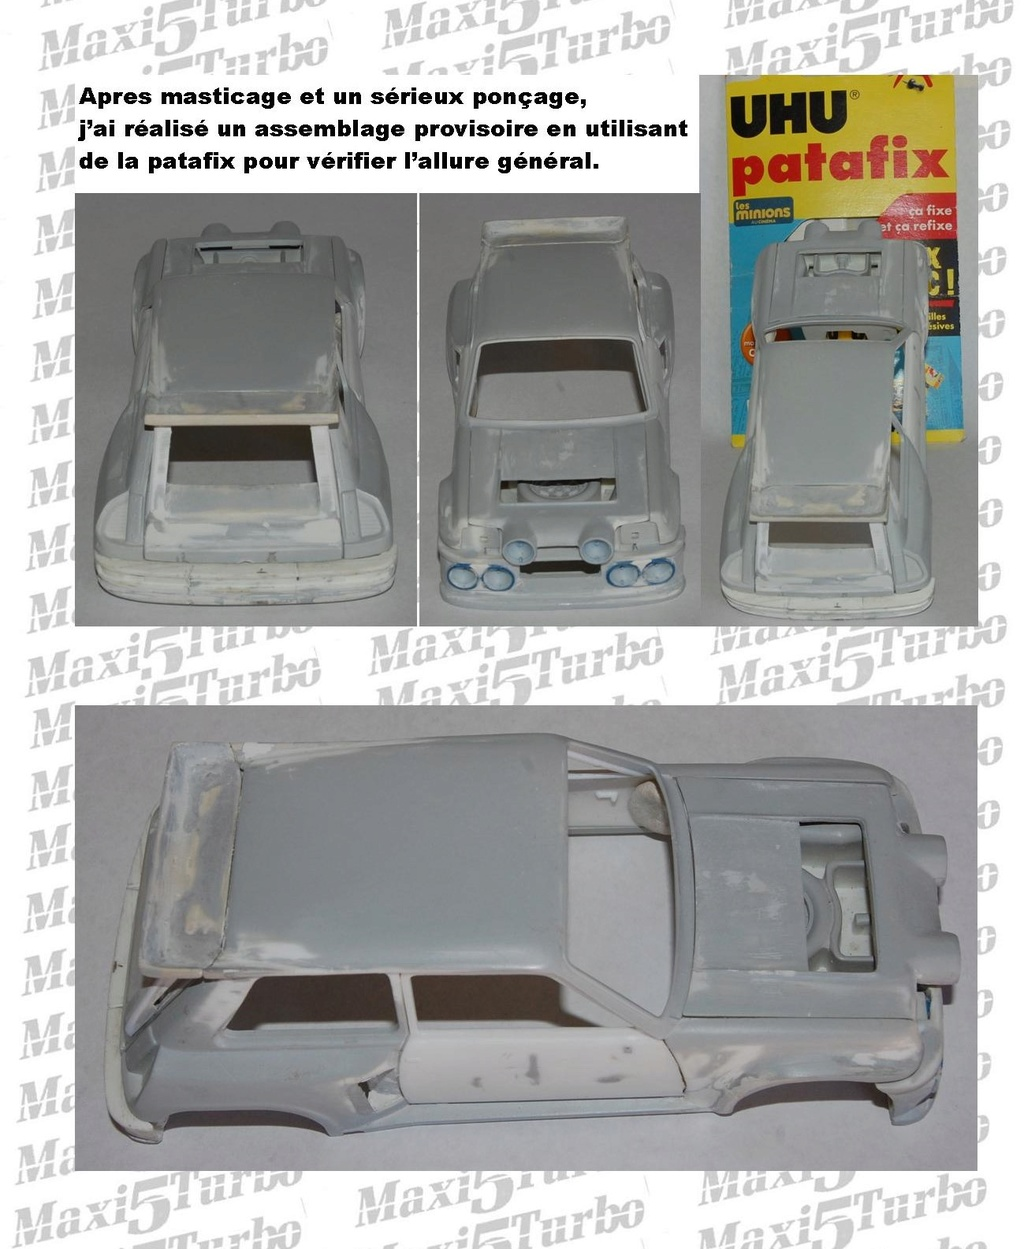 (1/24) Renault 5 Maxi turbo Ref 80717 ( Hors delai ) - Page 3 4310